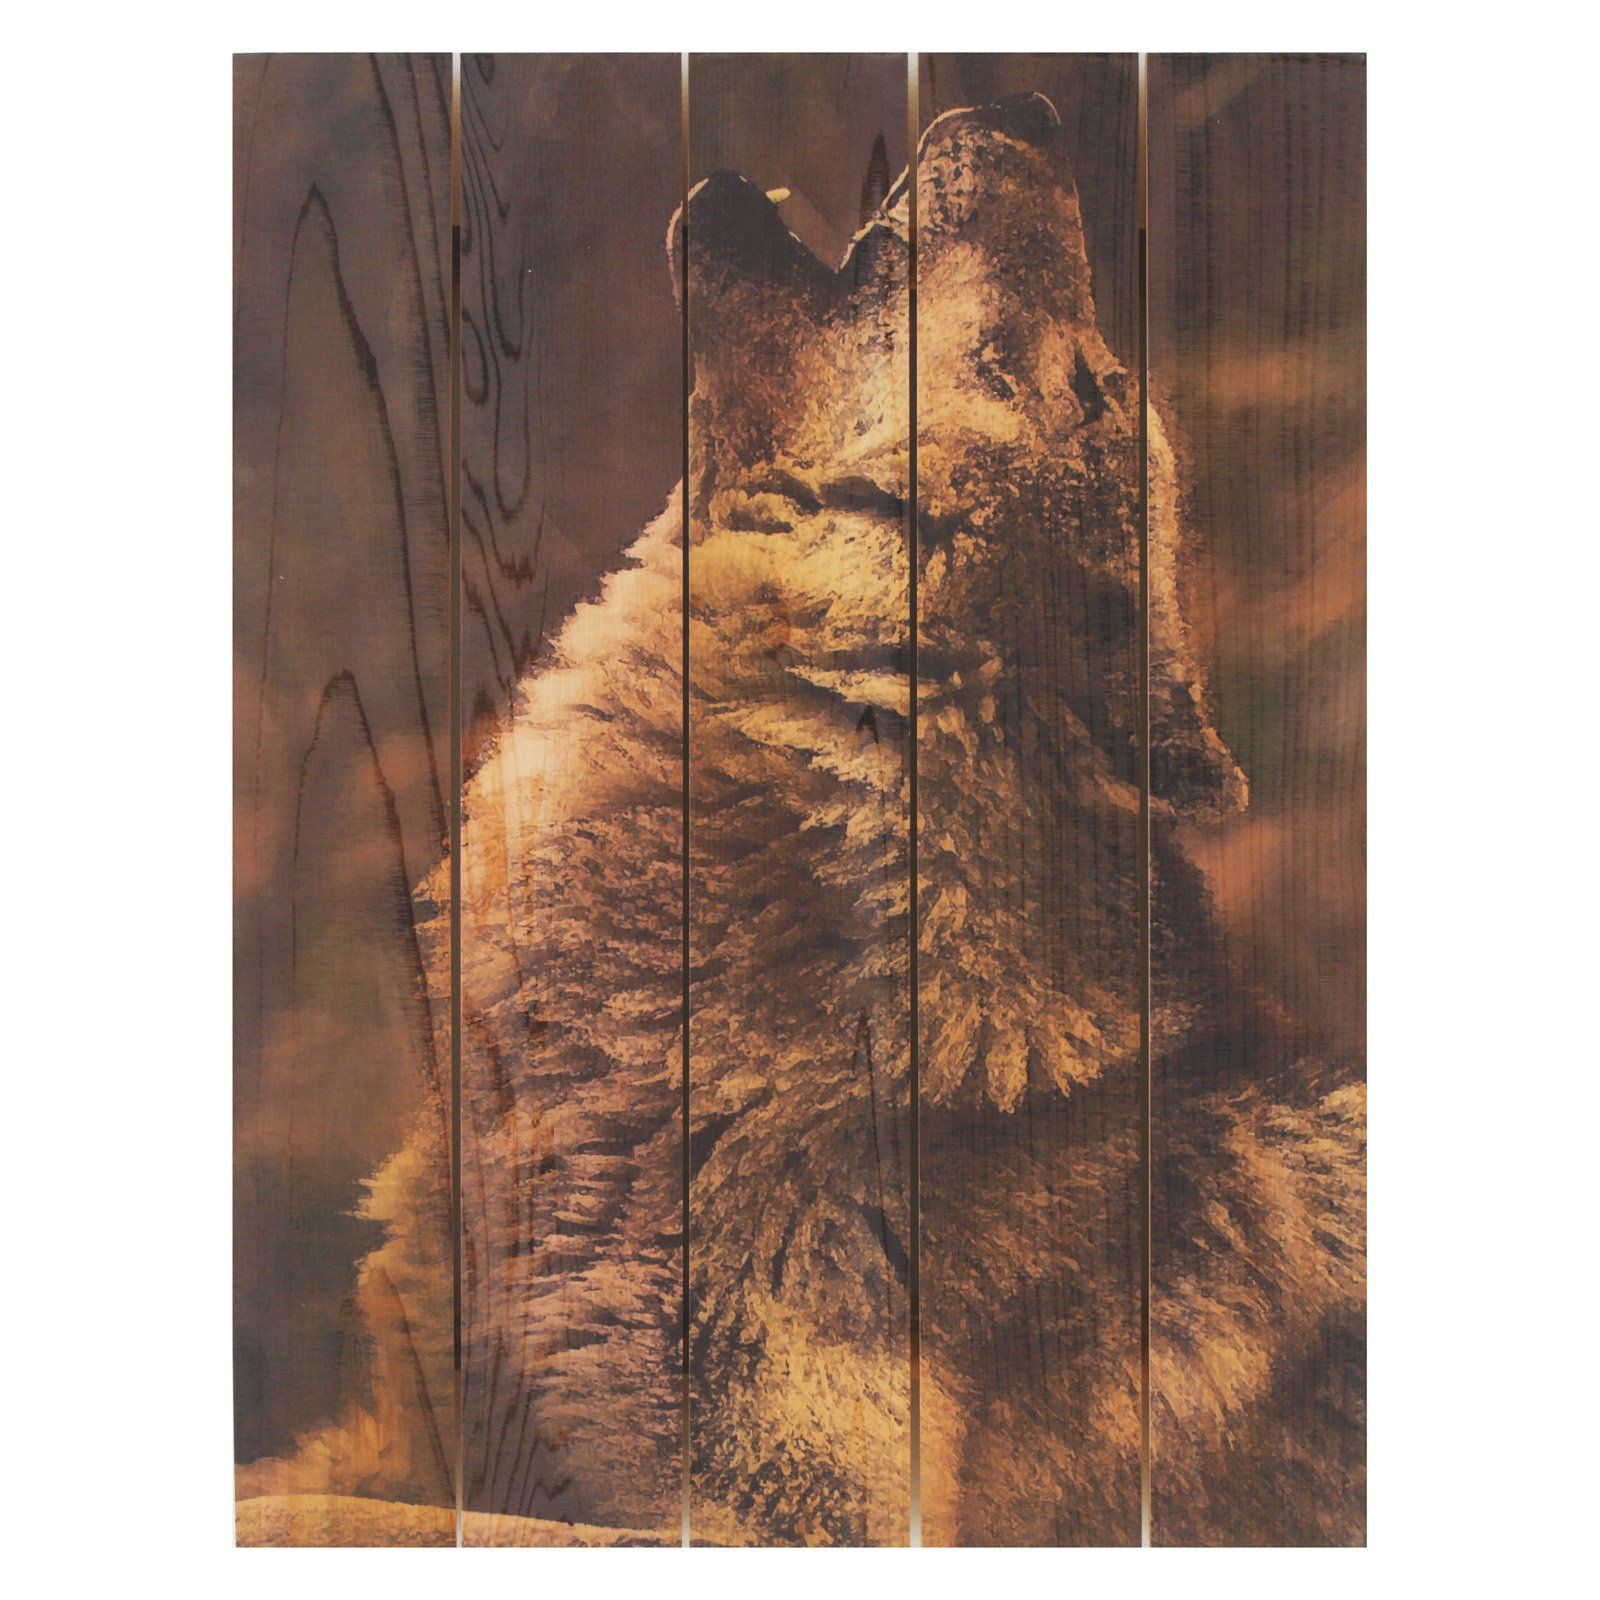 Gizaun Art Crying Wolf Inside/Outside Full Color Cedar Wall Art